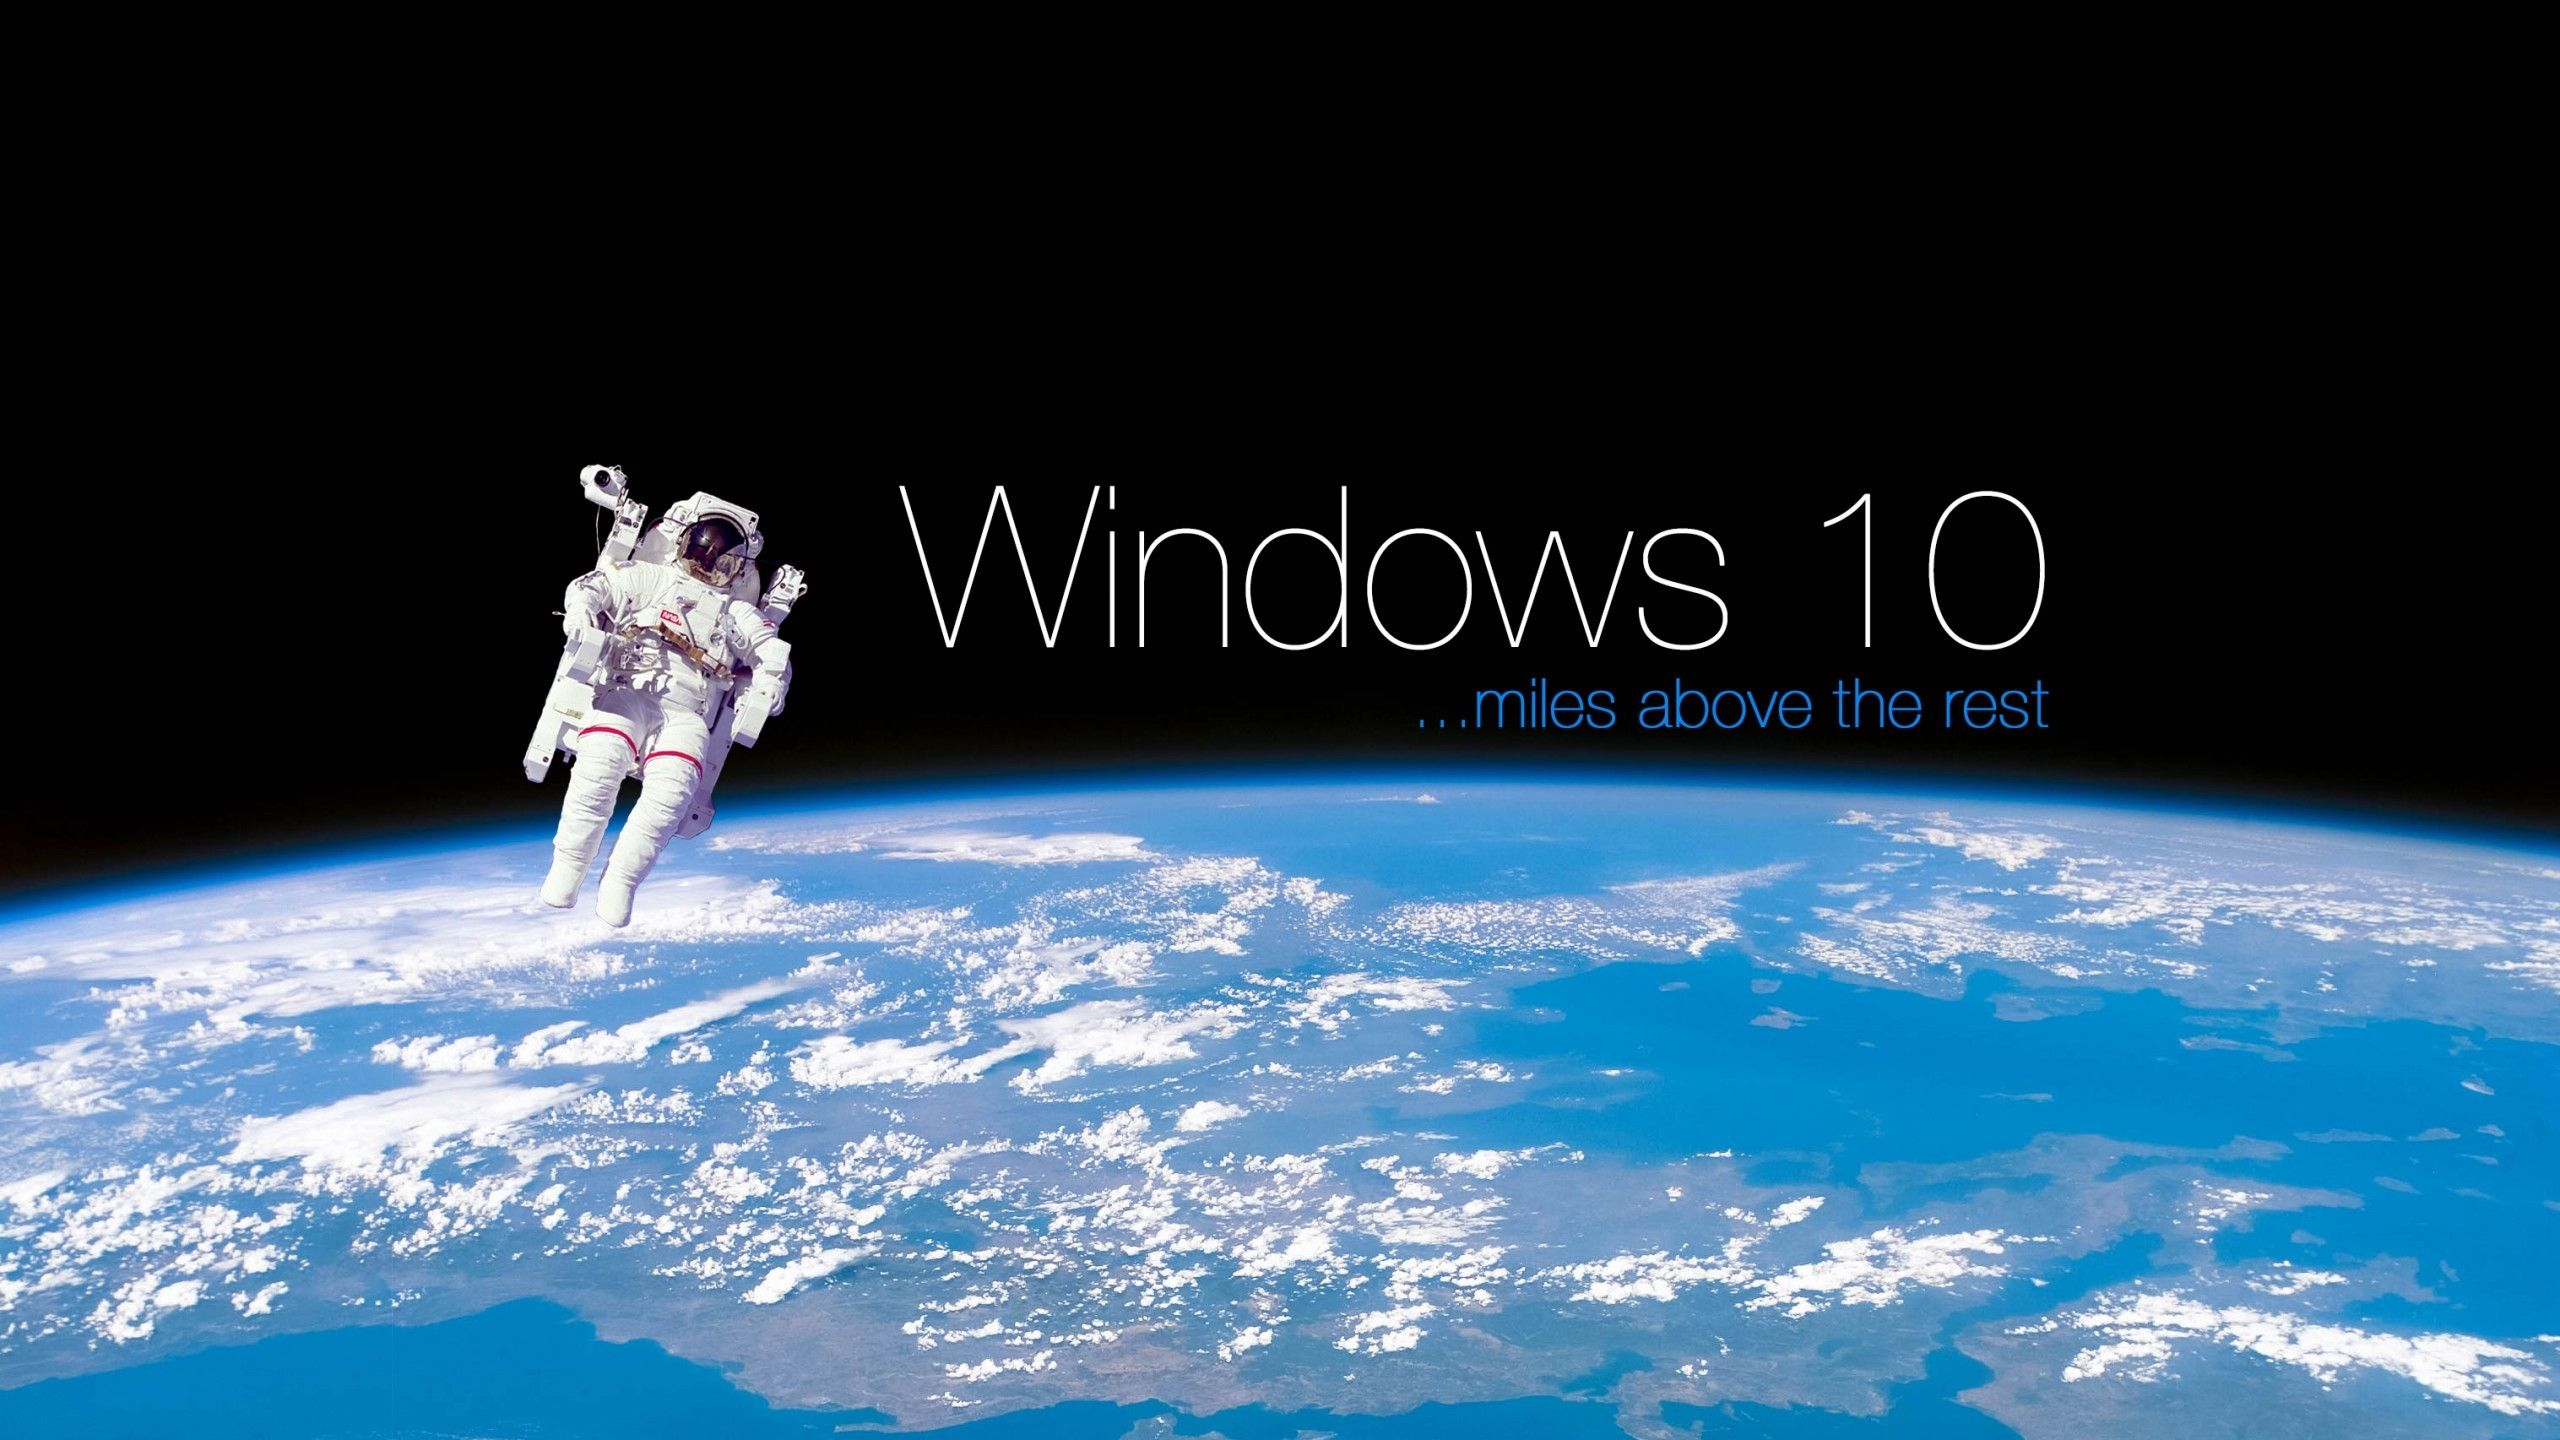 2560x1440 Windows 10 Space 4k Wallpaper Press The Download Button